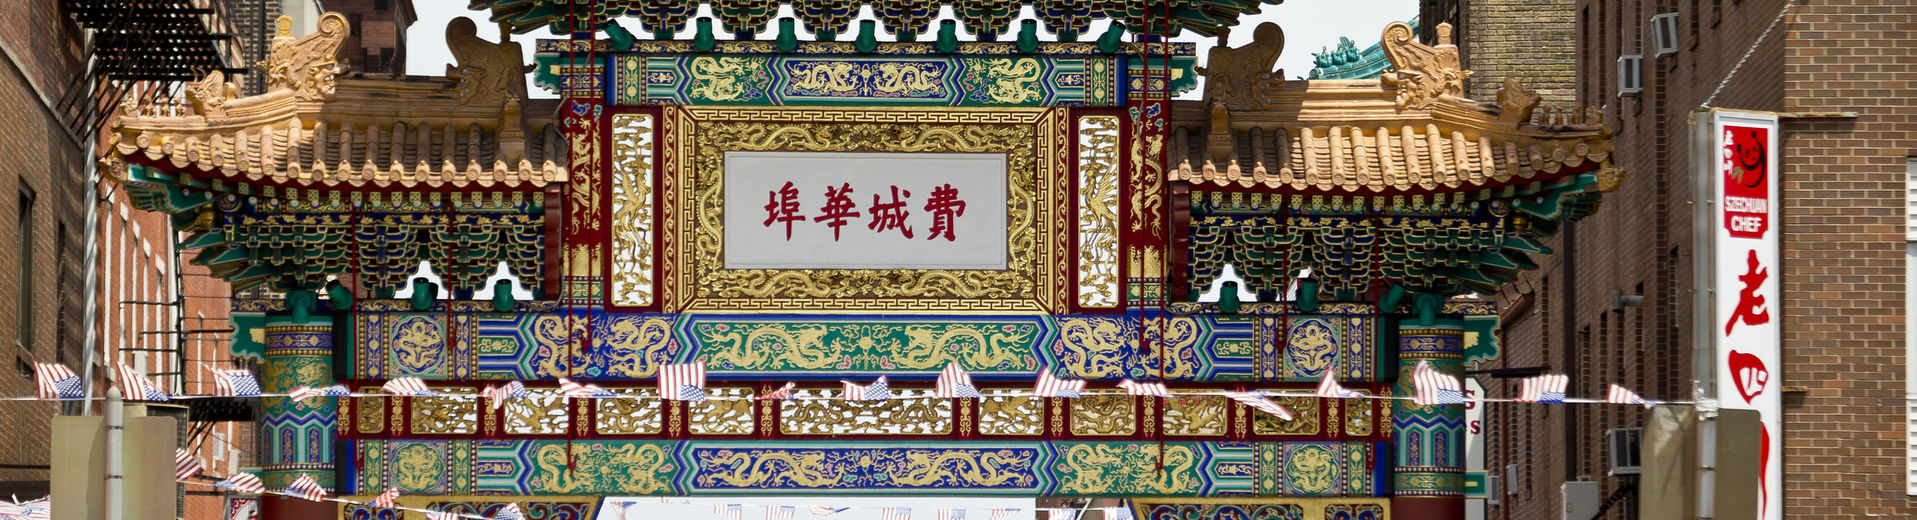 Ornate and colorful architecture in Philadelphia's Chinatown neighborhood.